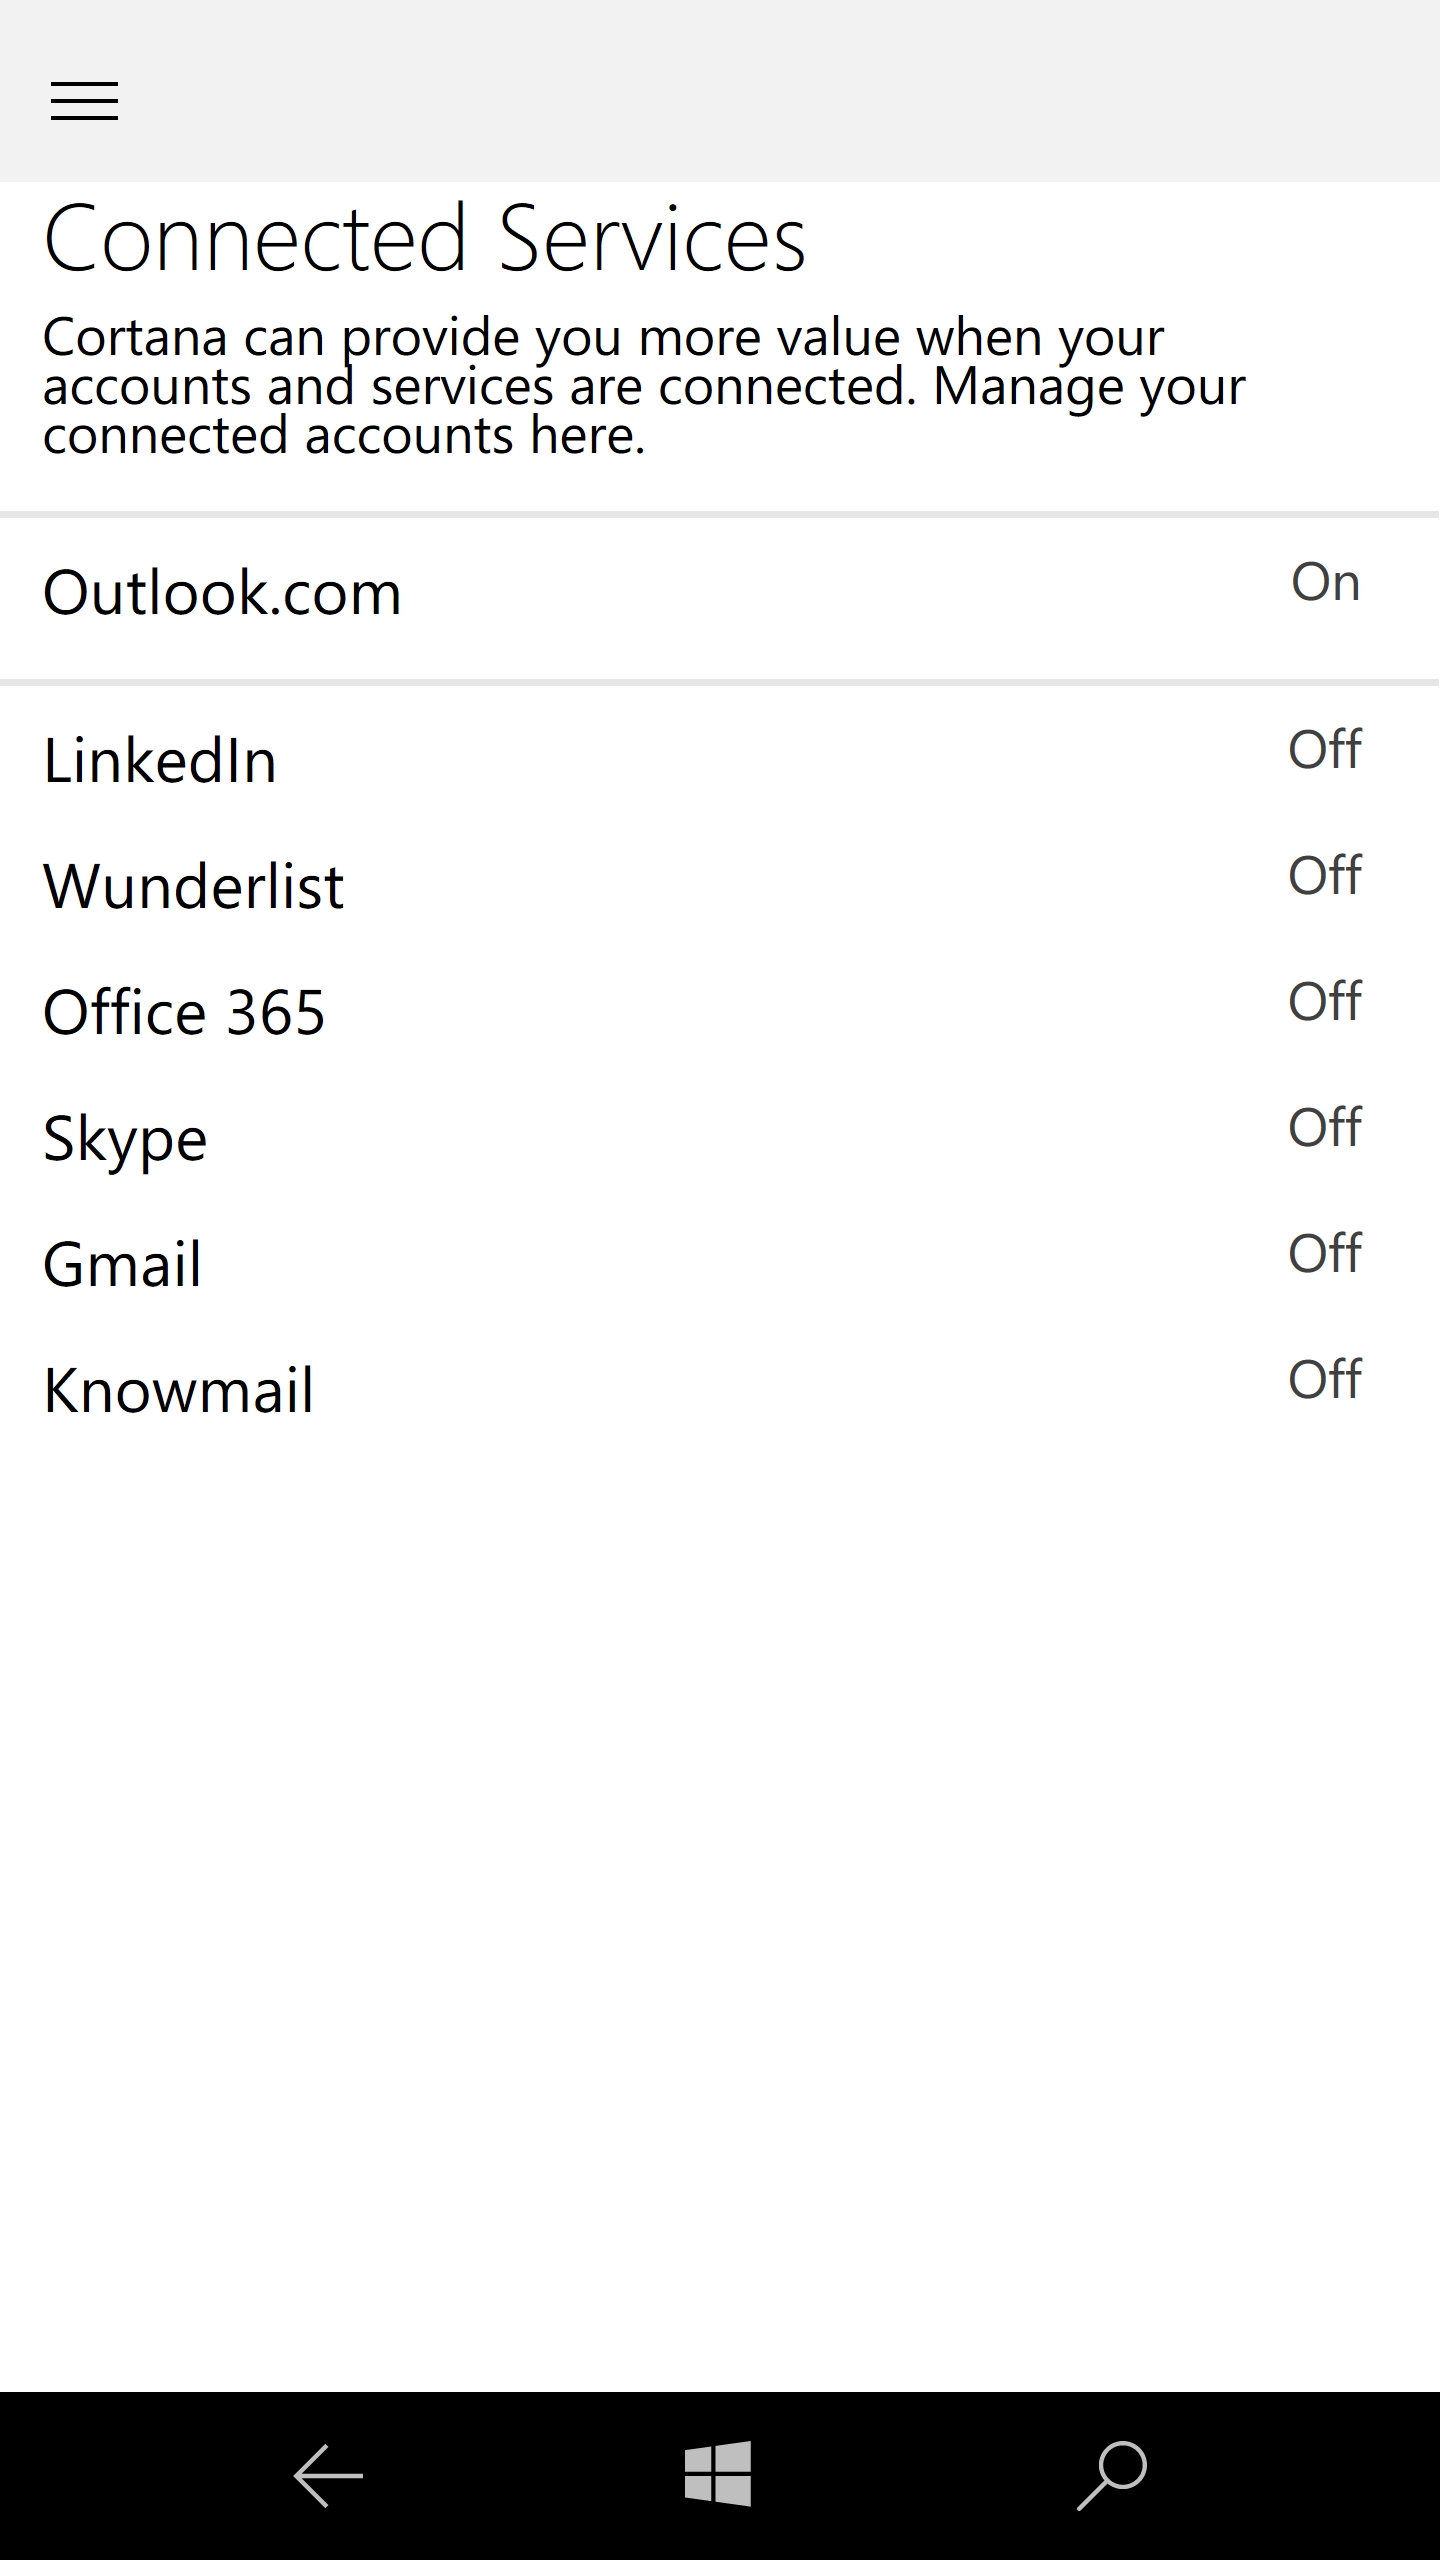 How do I get Wunderlist to disconnect from Cortana? - Microsoft